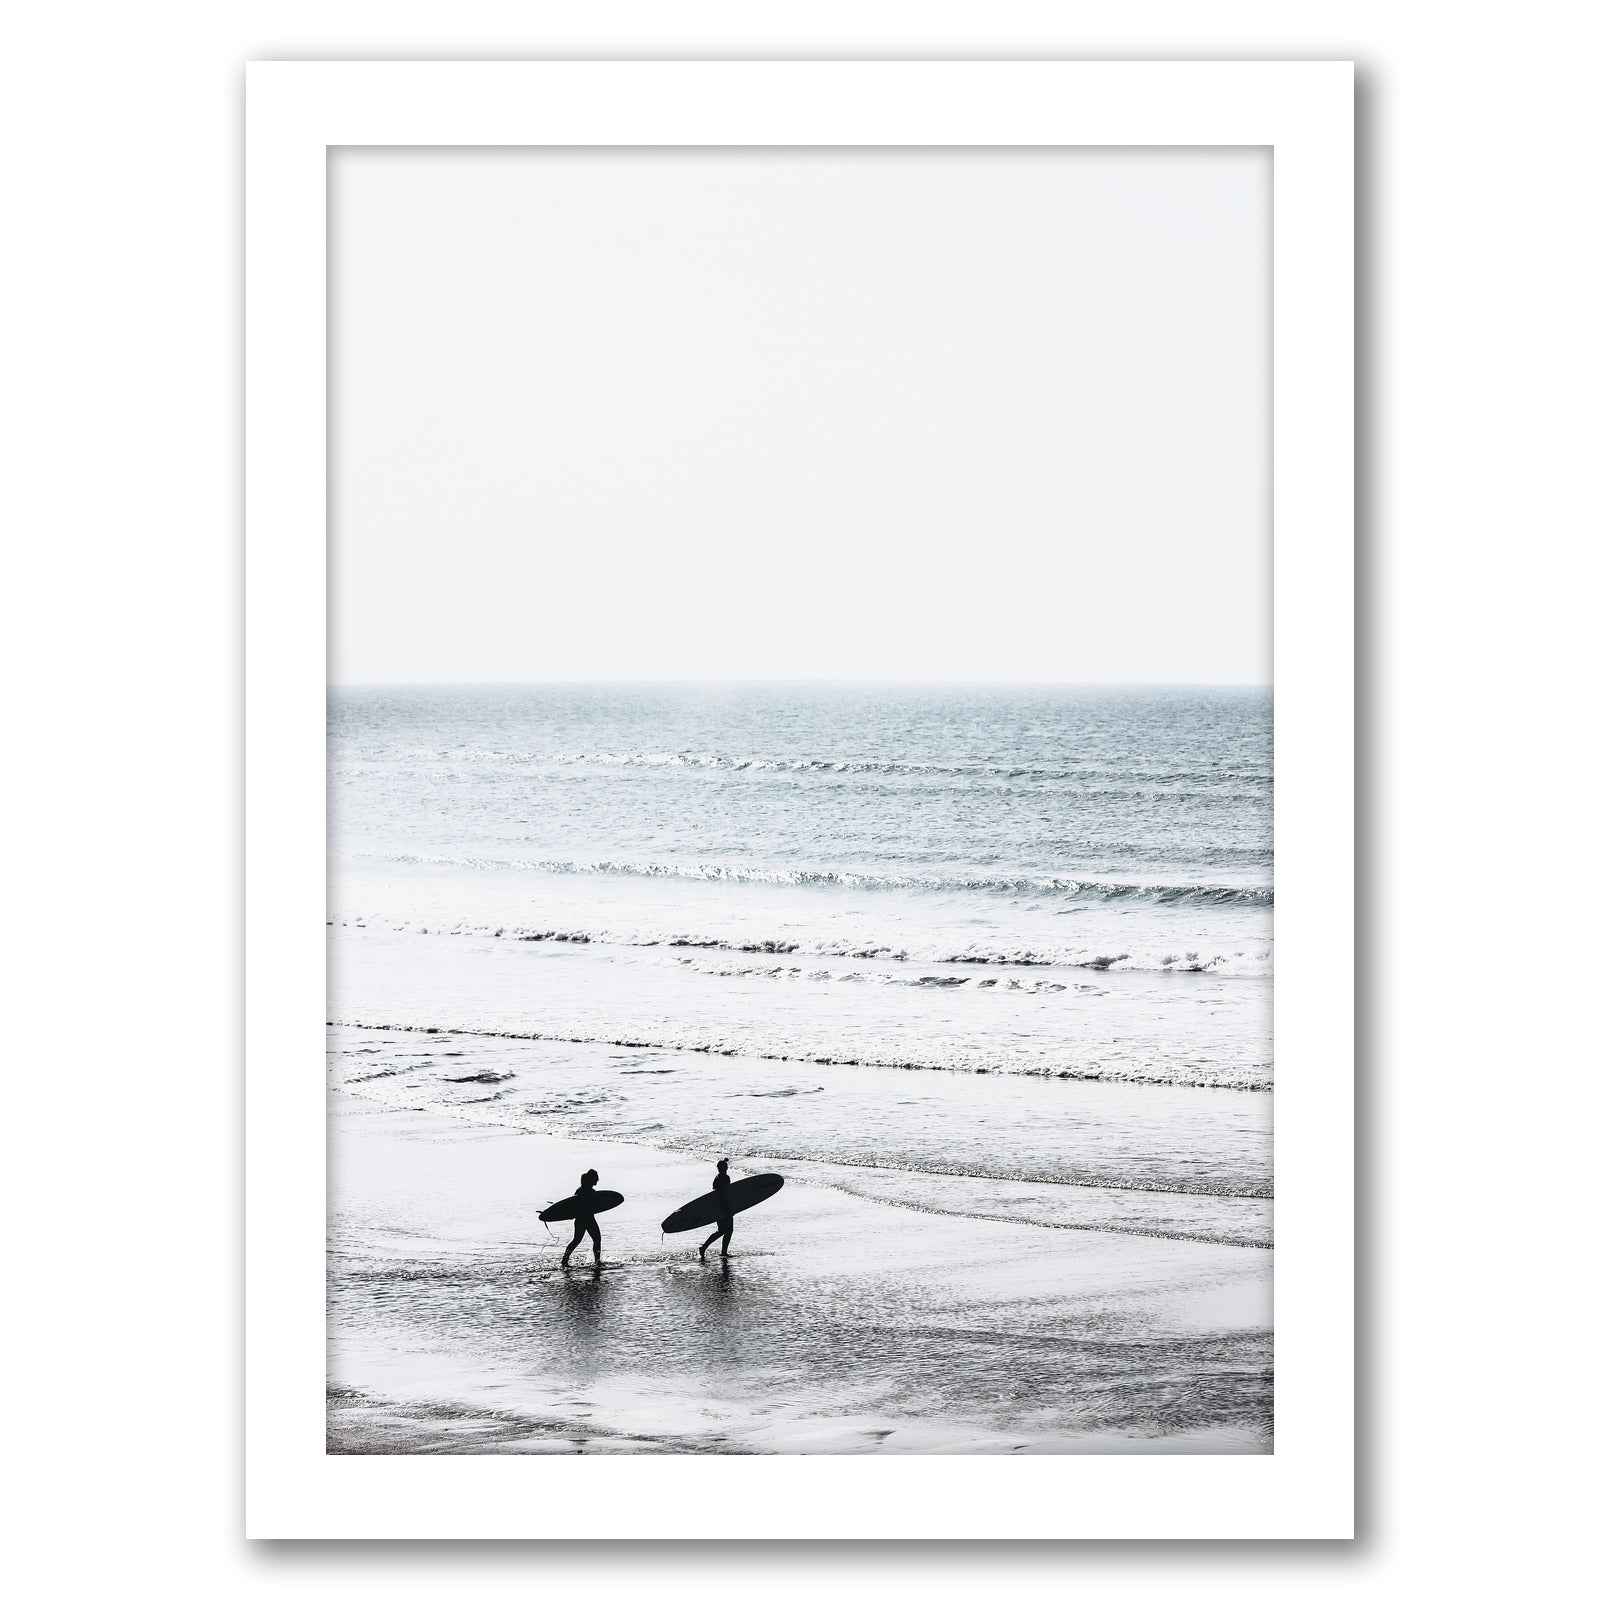 Two Surfers On The Beach by Tanya Shumkina - White Framed Print - Wall Art - Americanflat